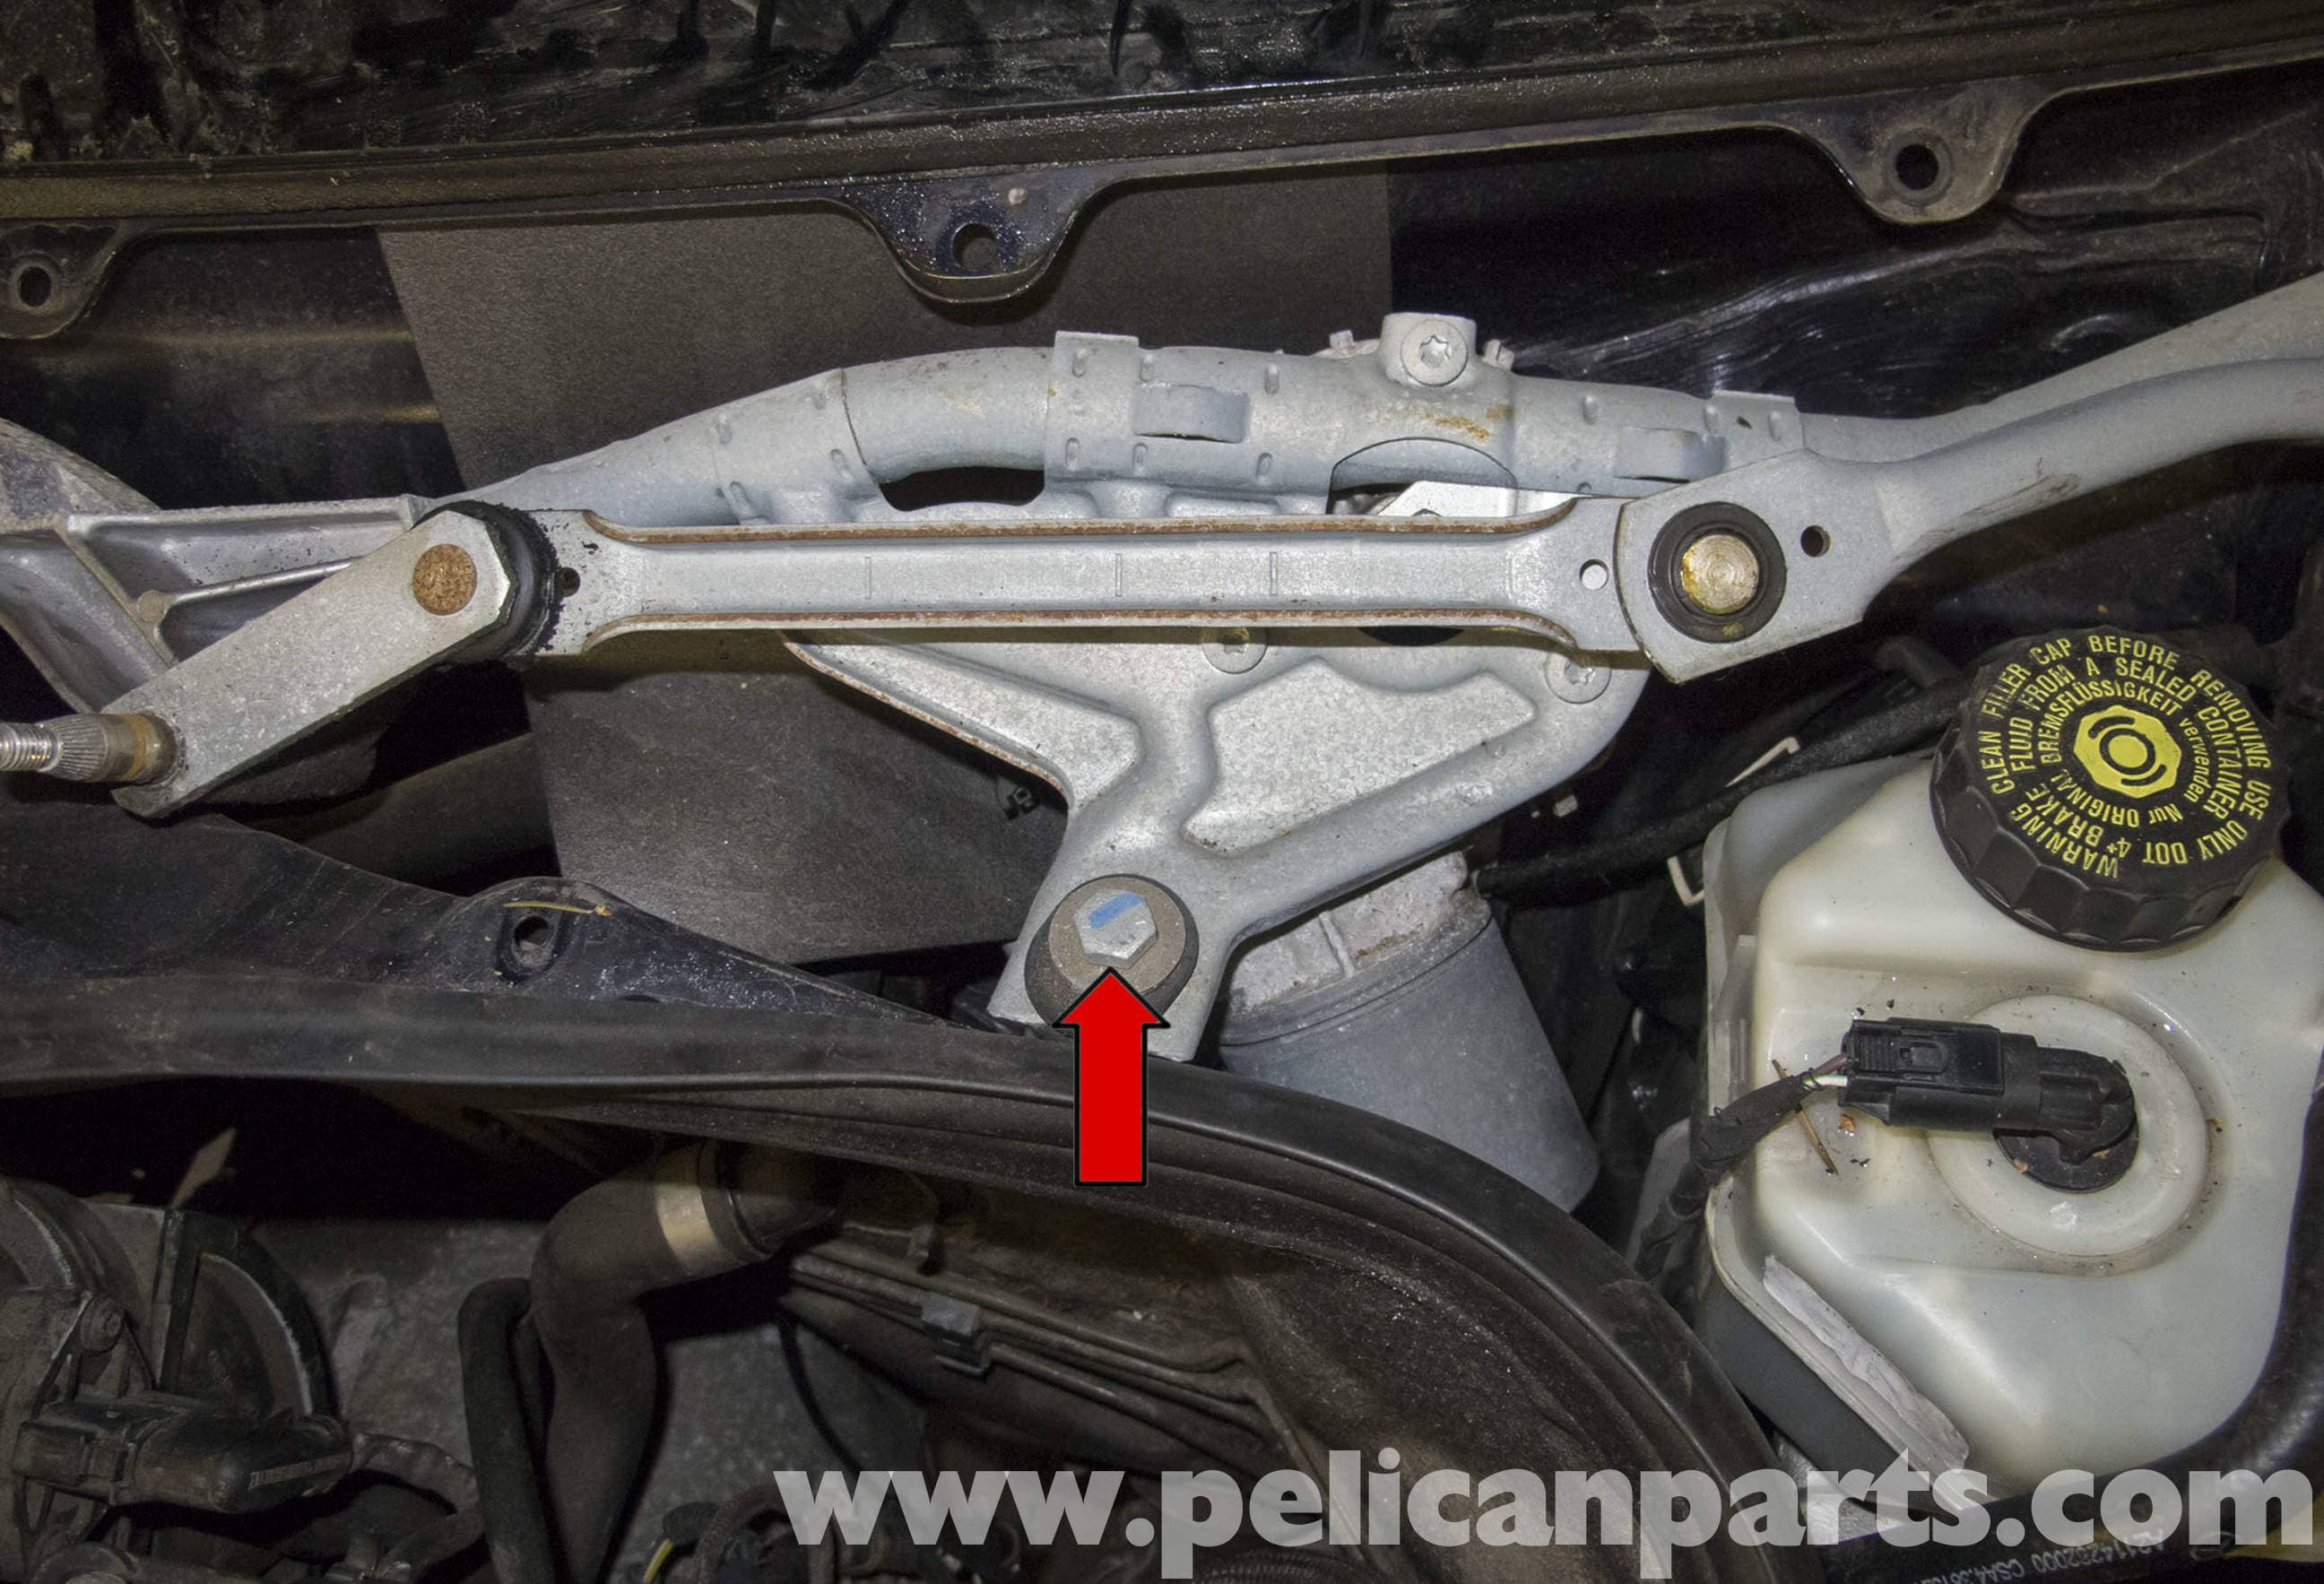 Mercedes benz w211 wiper component replacement 2003 2009 for Mercedes benz windshield wipers replacement